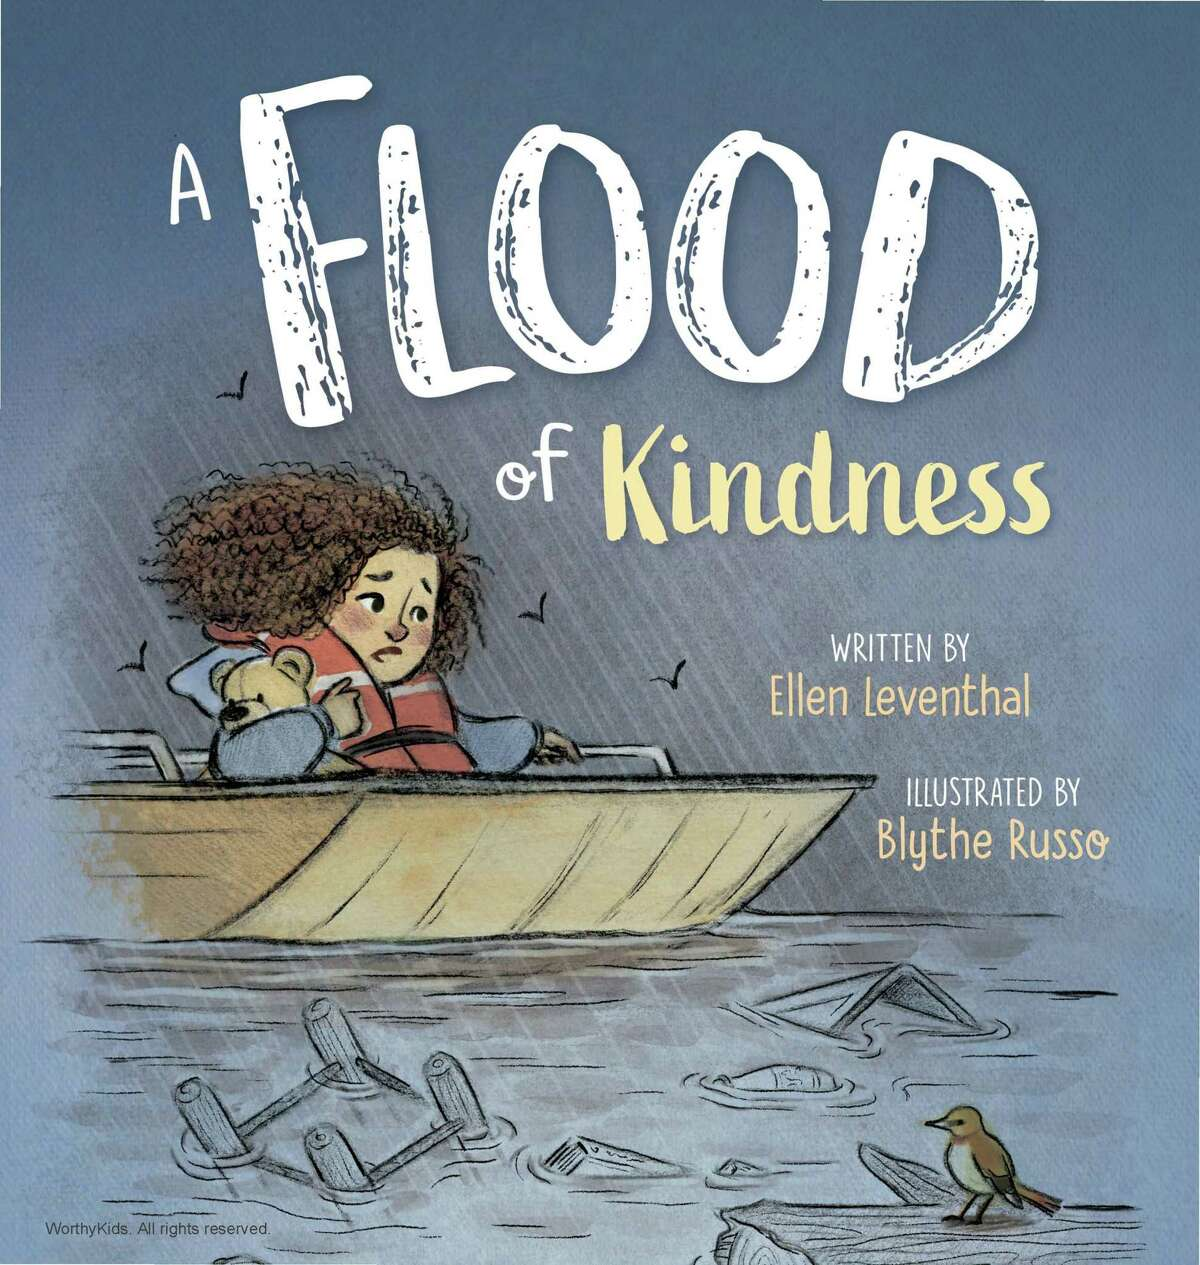 Author and educator Ellen Leventhal's latest book A Flood of Kindness will be released on April 13. Leventhal is planning a virtual book launch event with Brazos Bookstore on April 24.